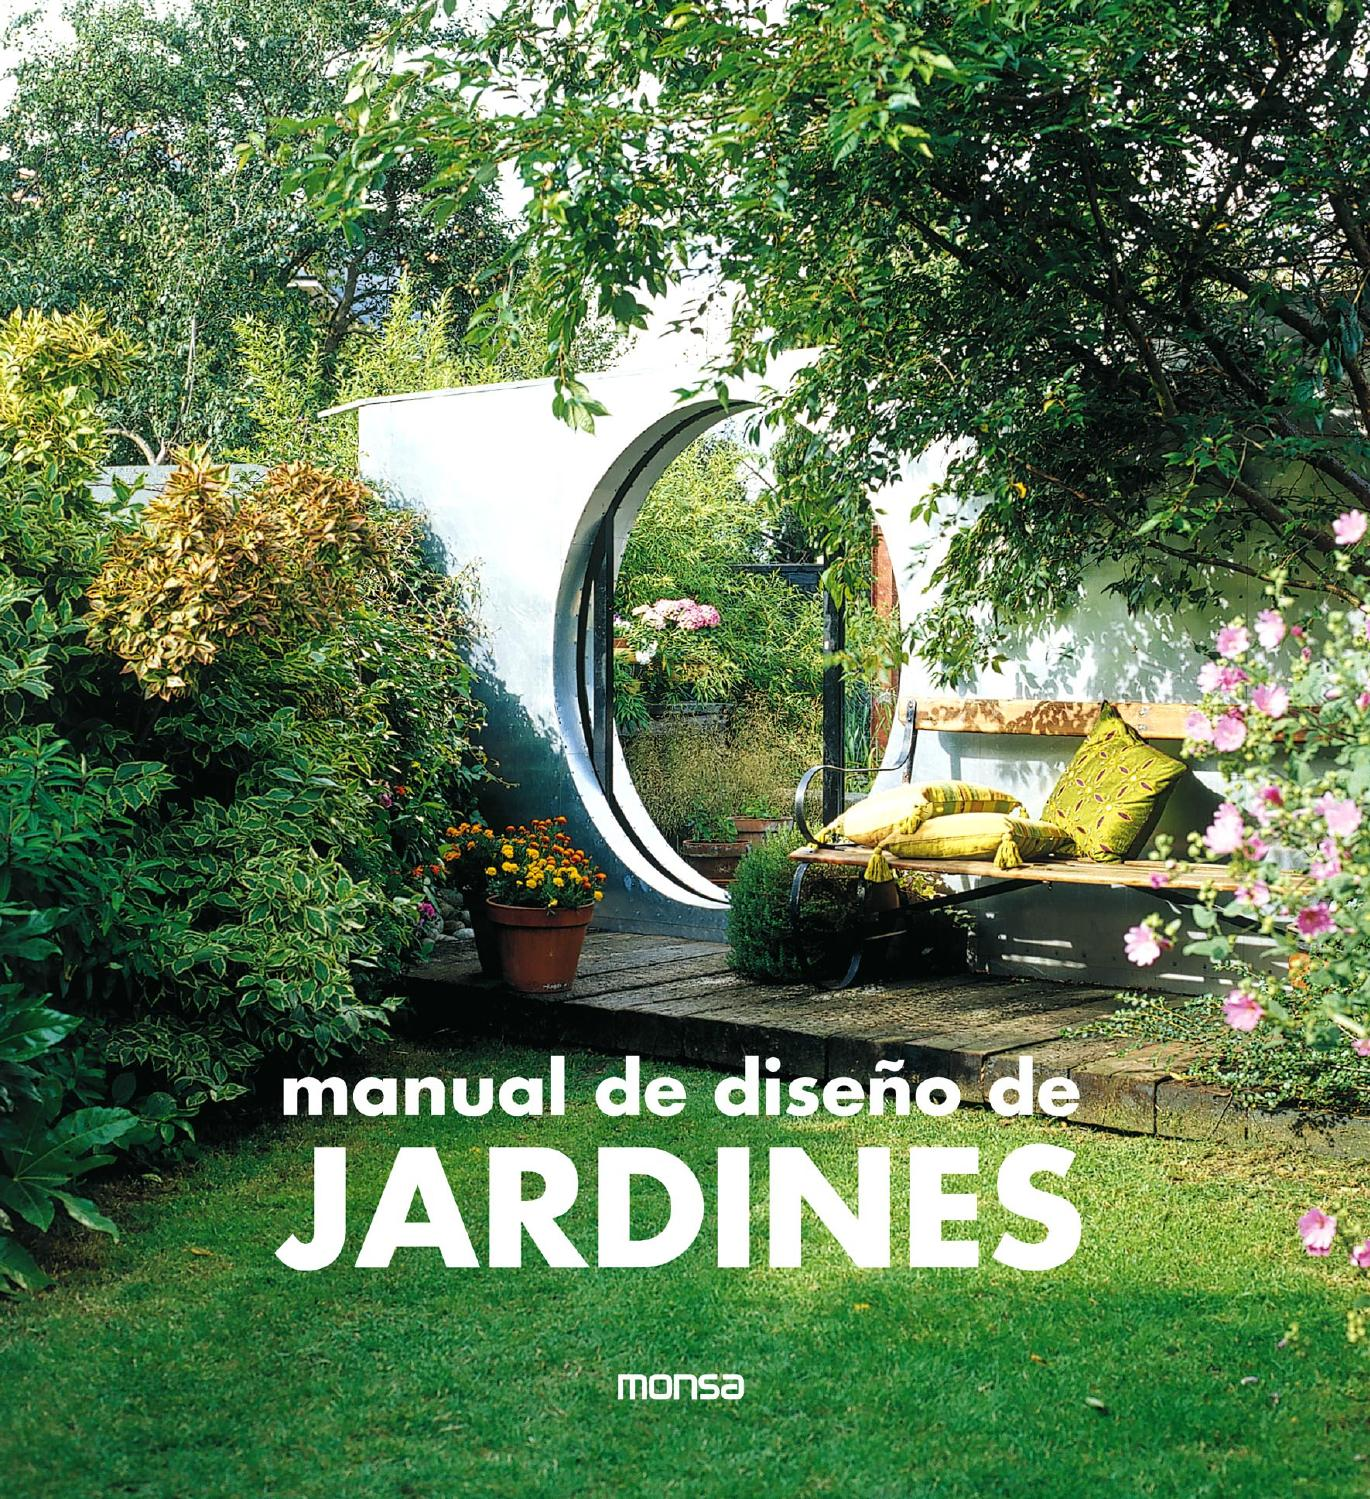 Manual de dise o de jardines by monsa publications issuu for Diseno de cocinas de jardin